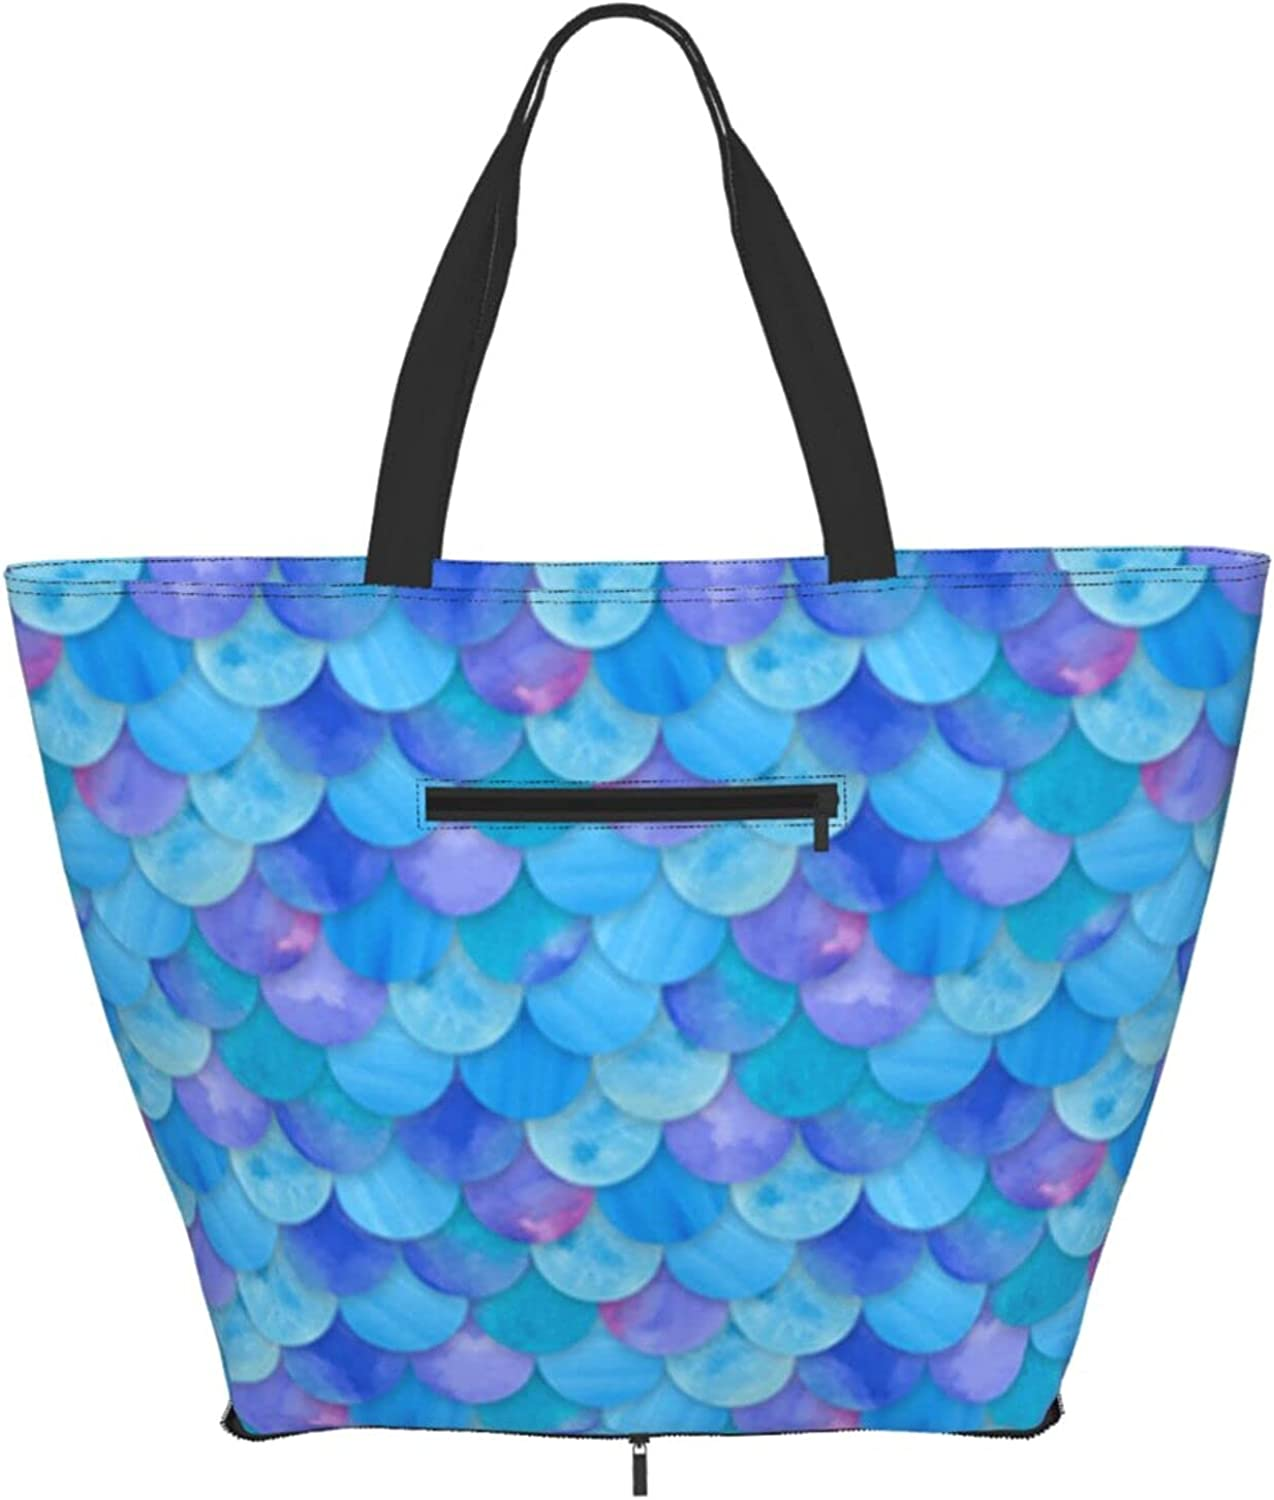 Animer and price revision Shoulder Tote Bag Geometric Blue Handle Top 67% OFF of fixed price Purse Mermaid Scales